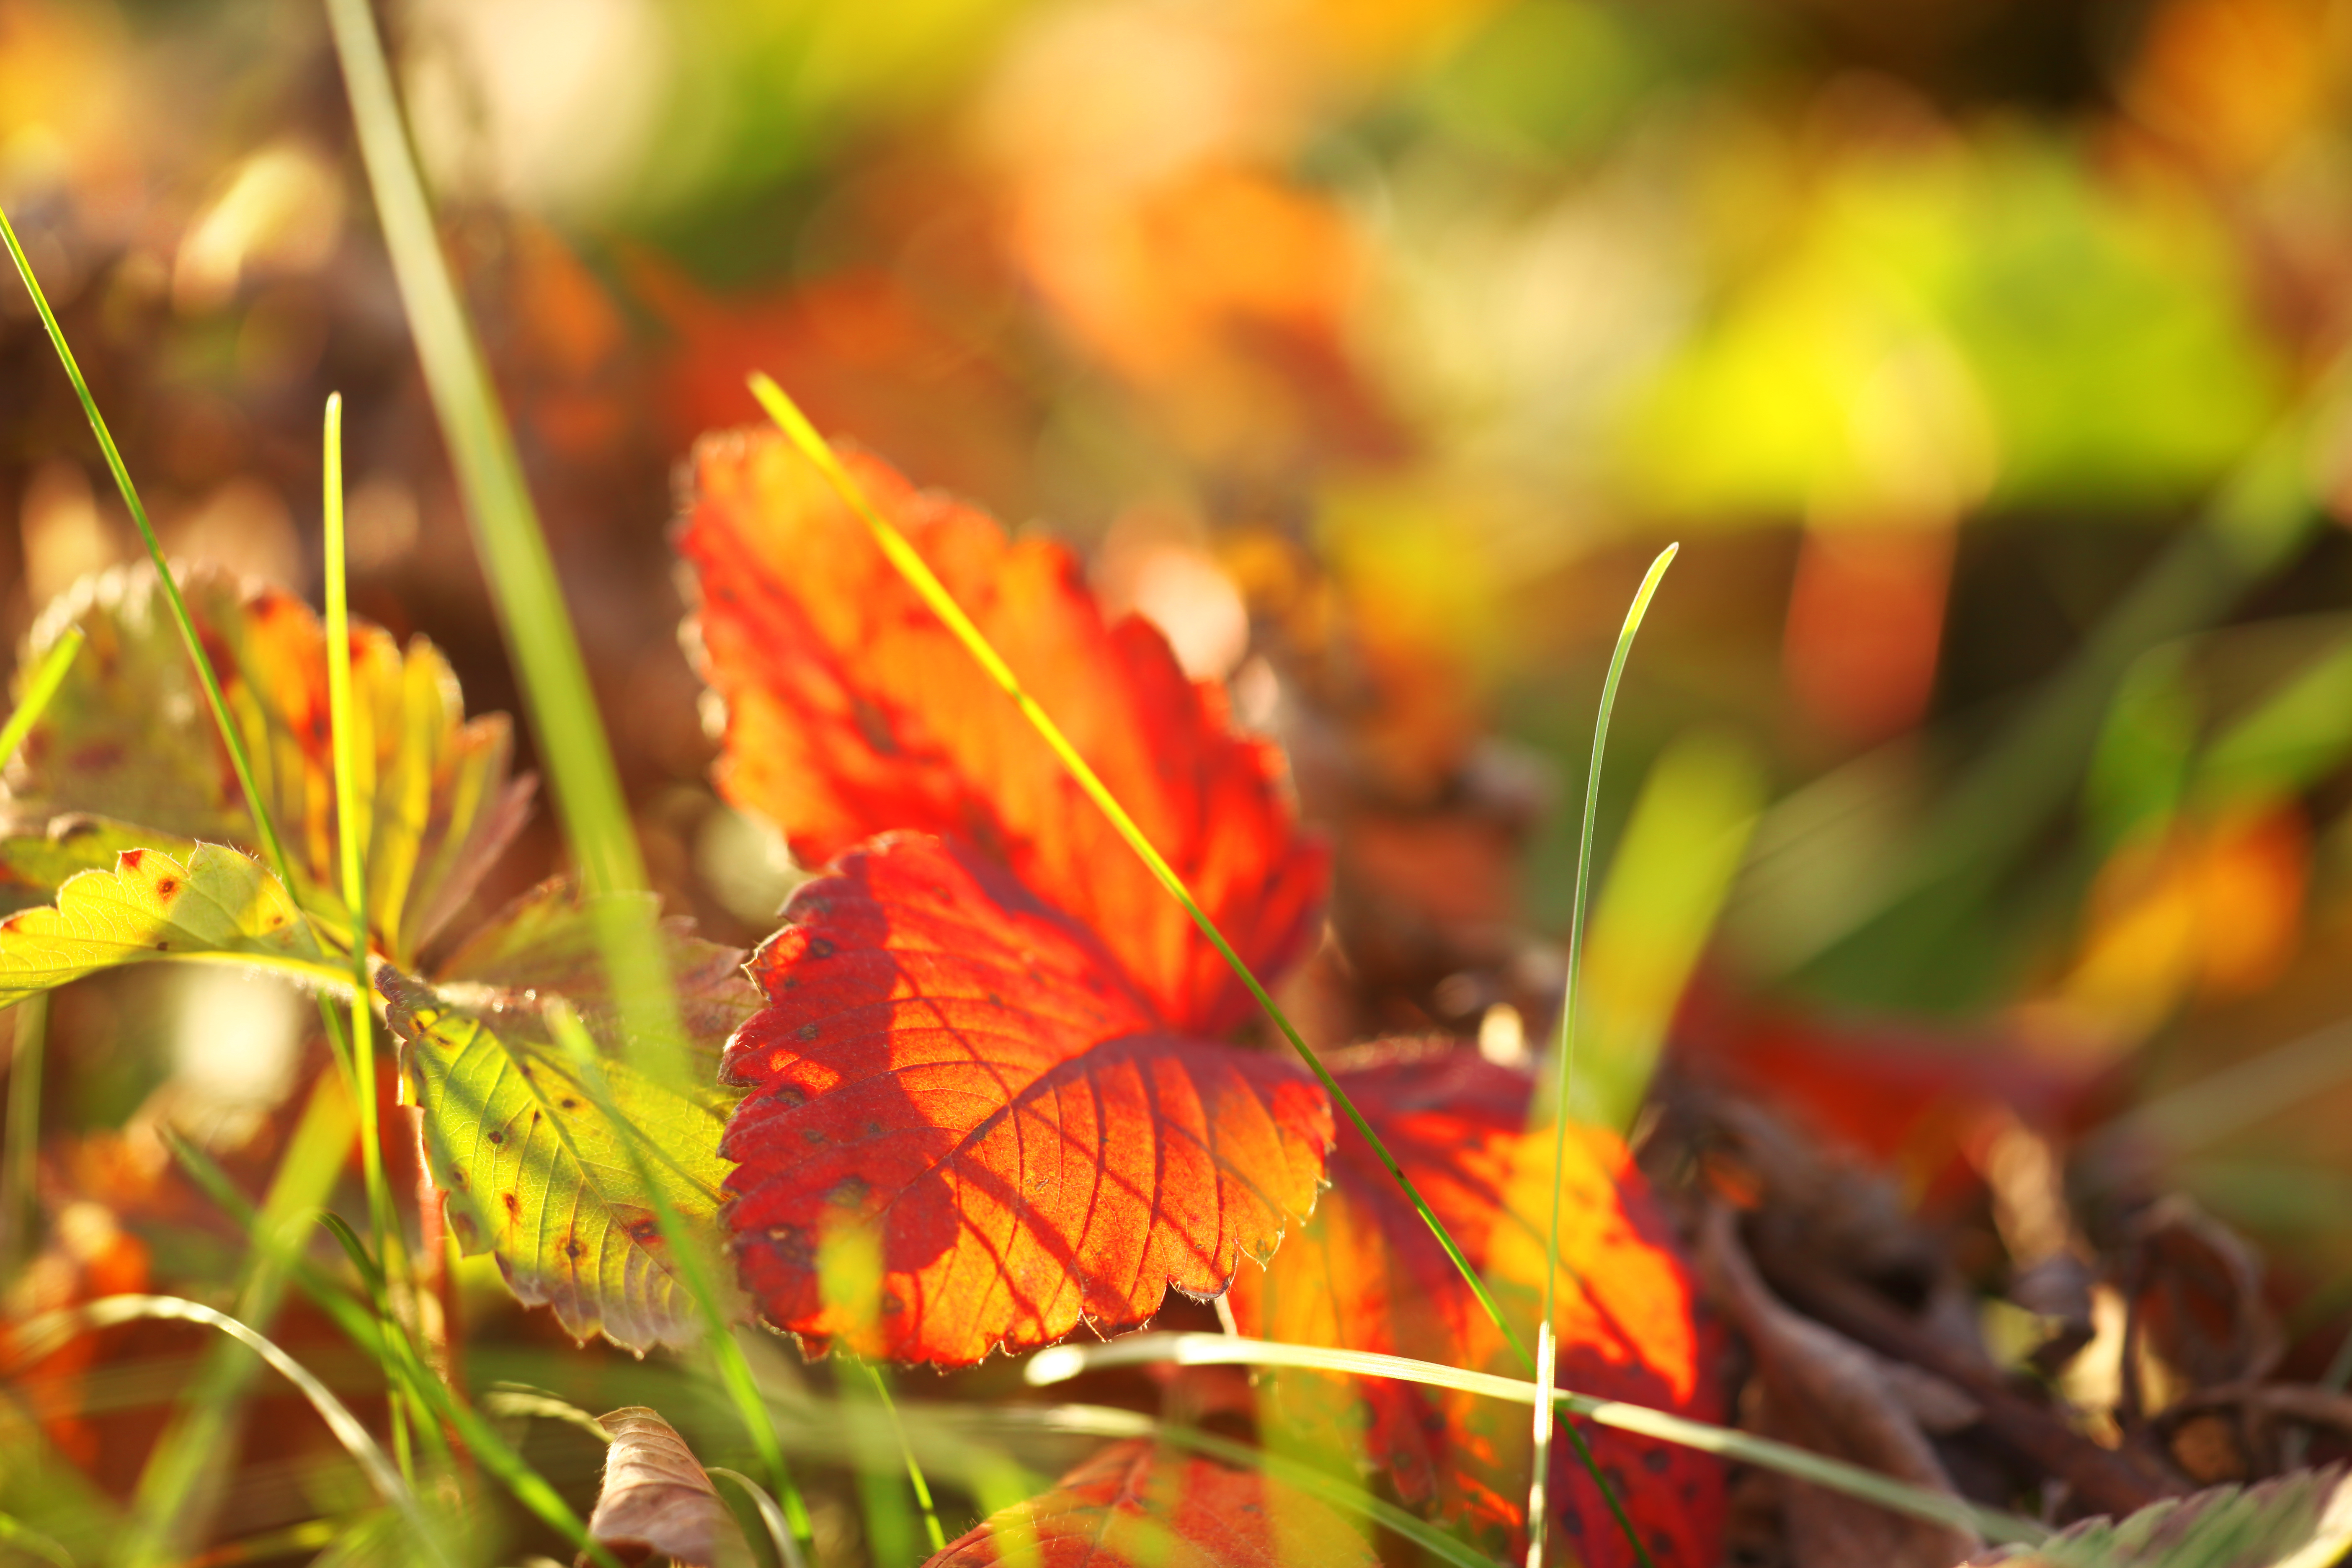 Nature background, Autumn, Fall, Grass, Green, HQ Photo